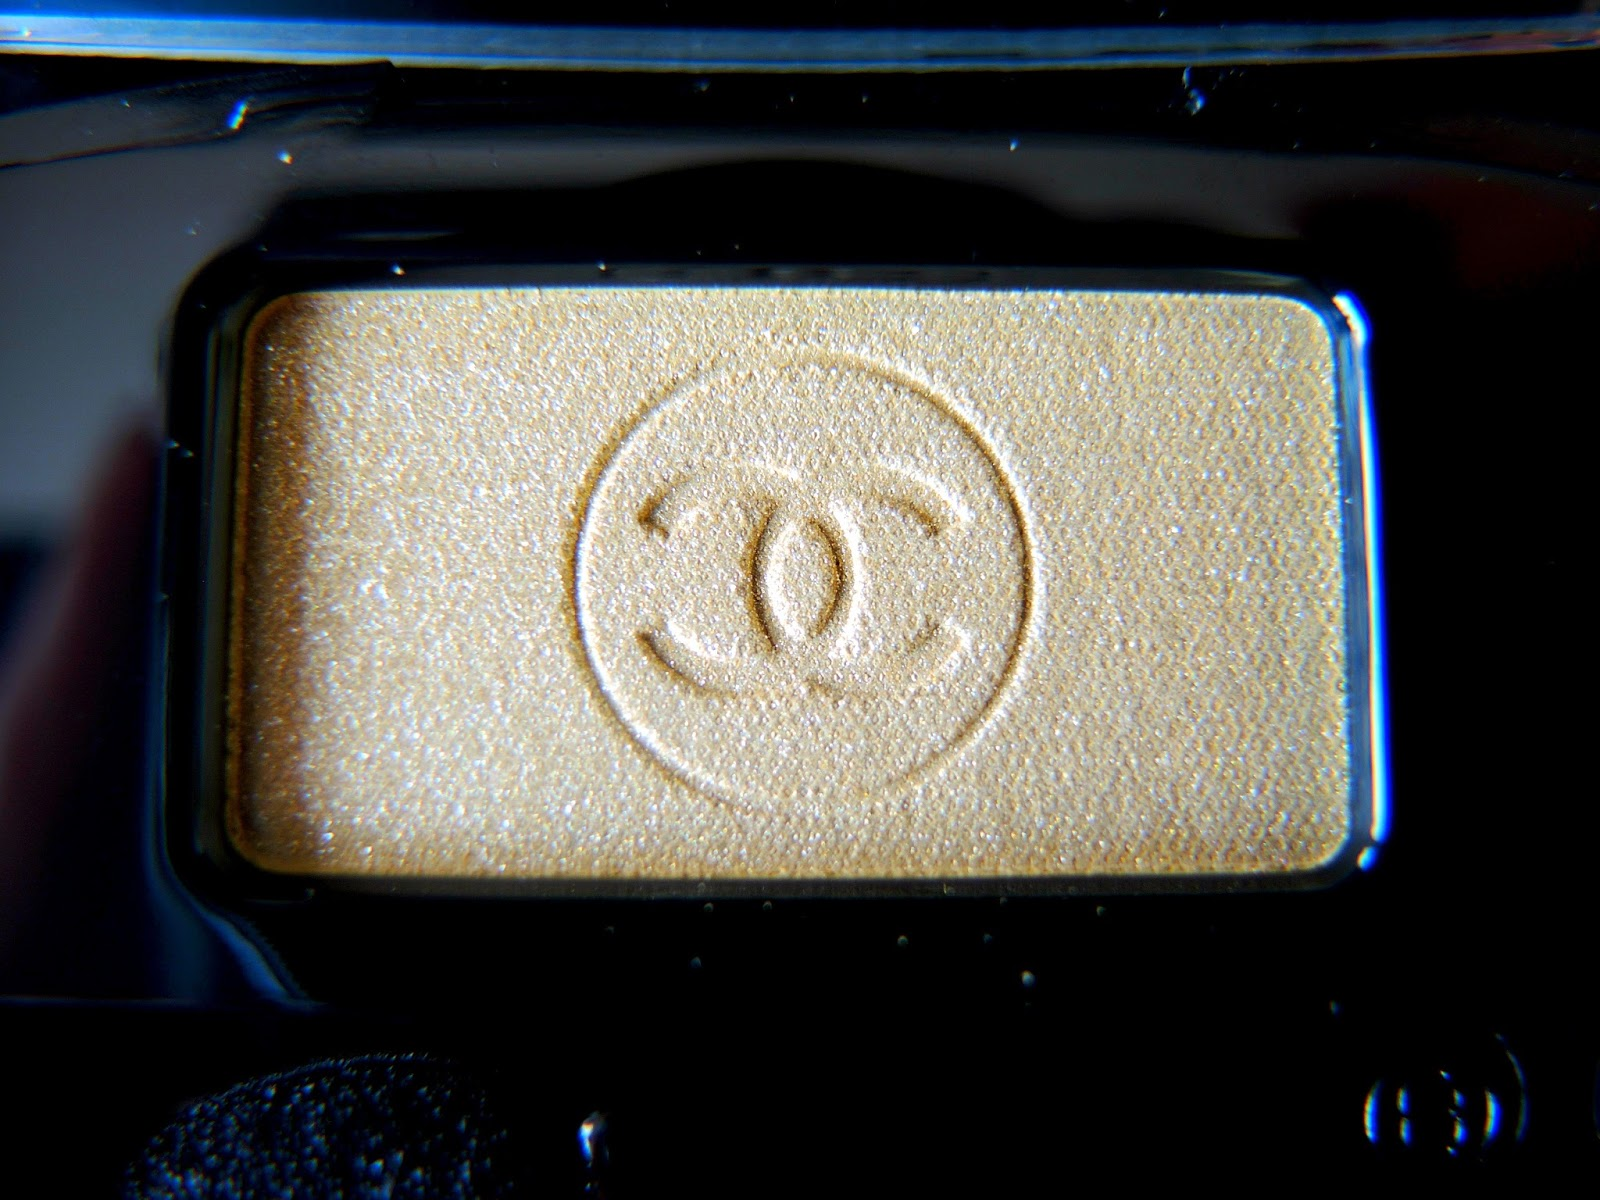 Chanel Éclairé Ombre Essentielle Soft Touch Eyeshadow Review, Photos, Swatches